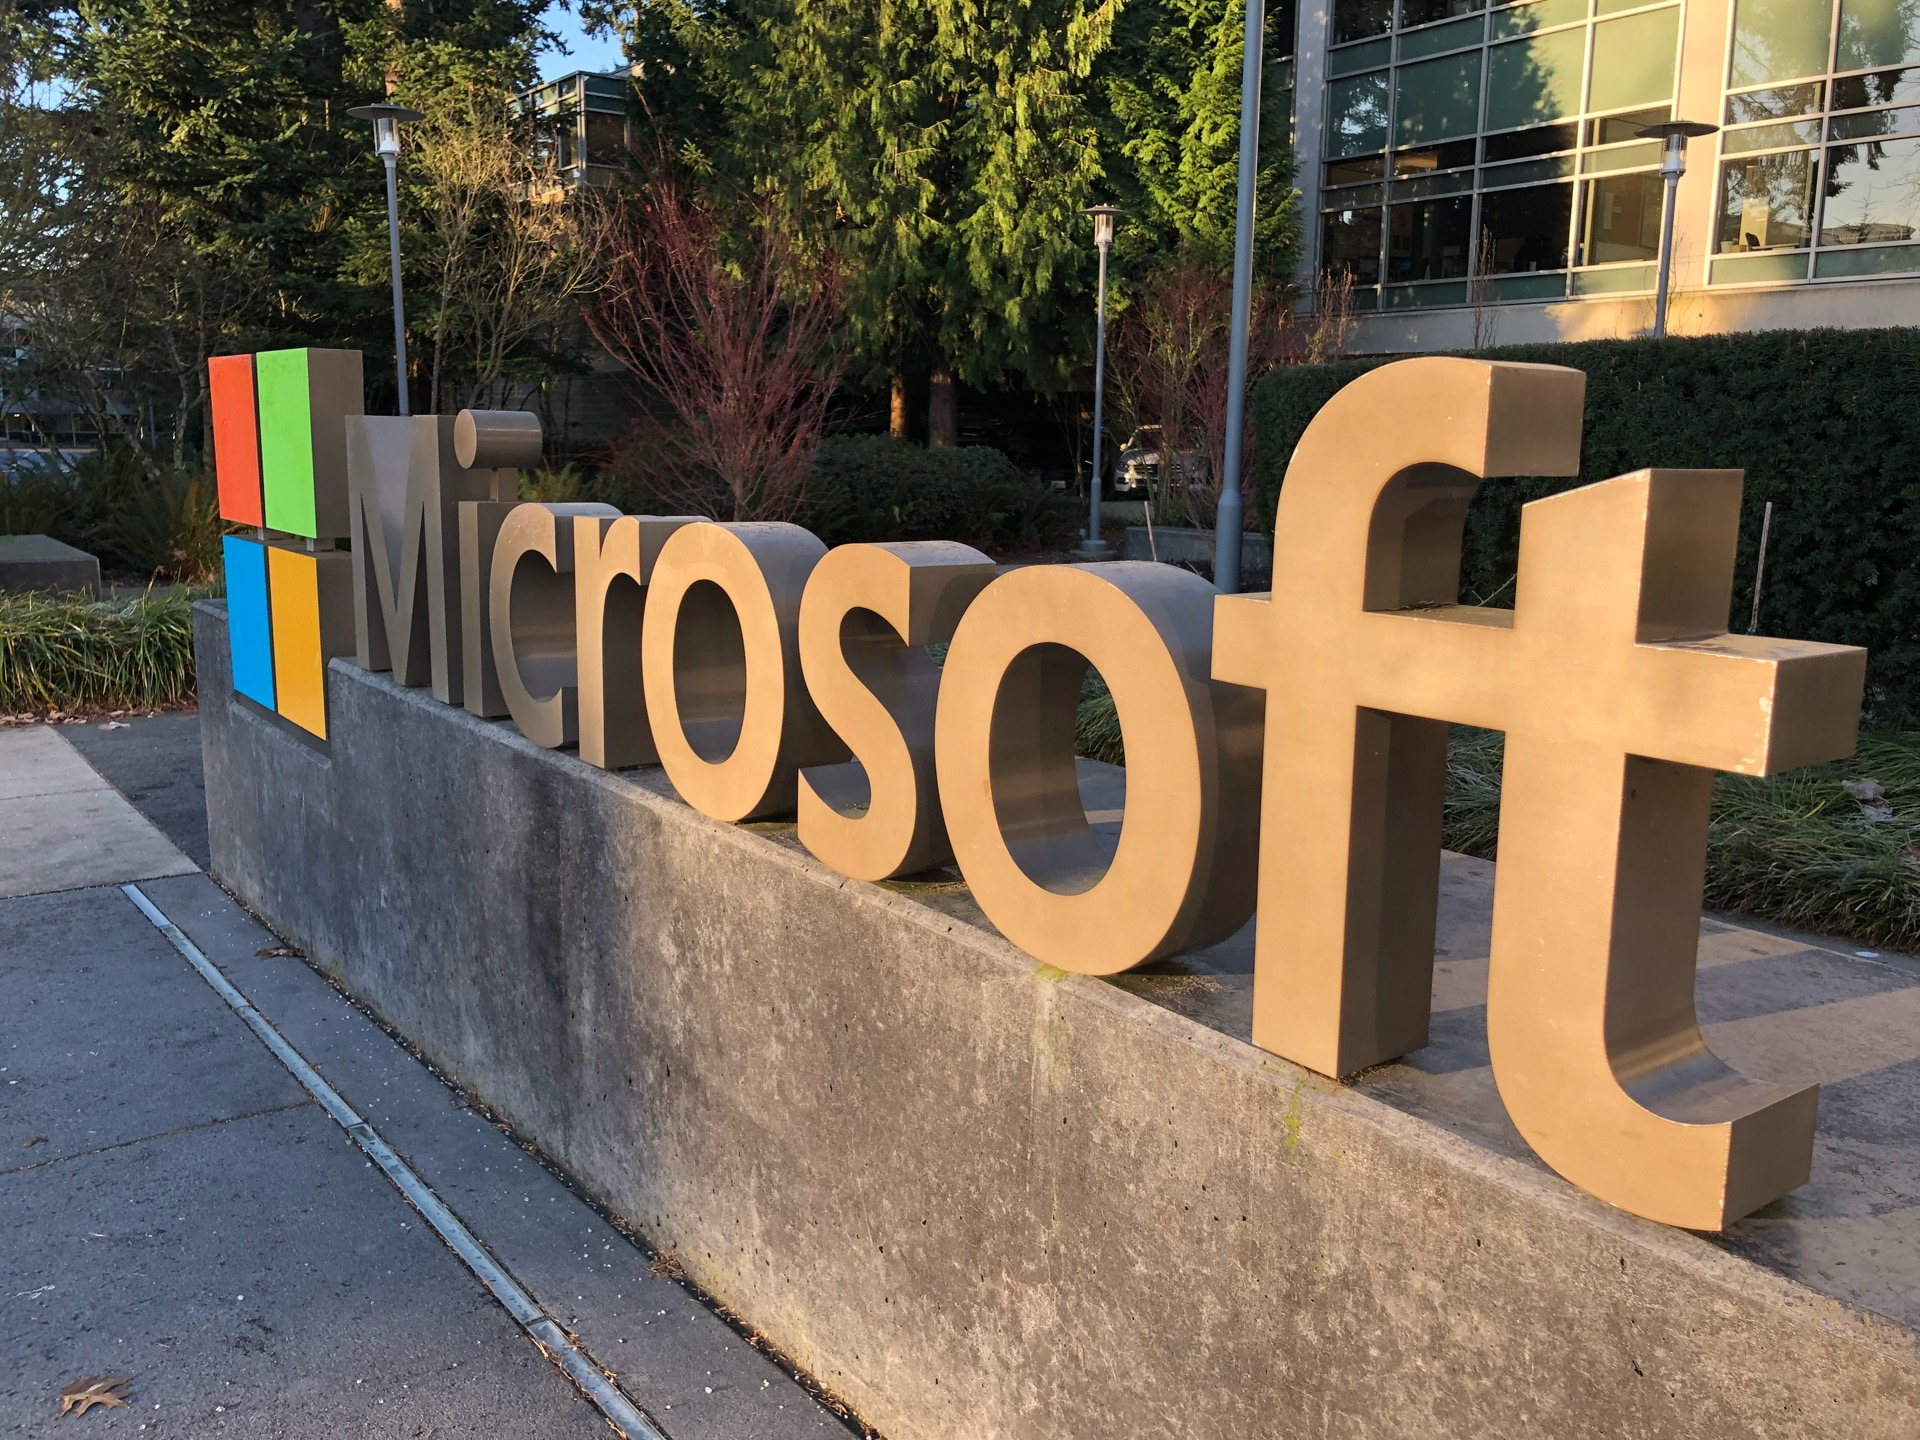 Photo of Microsoft's $500 million for housing to mainly serve its own workforce